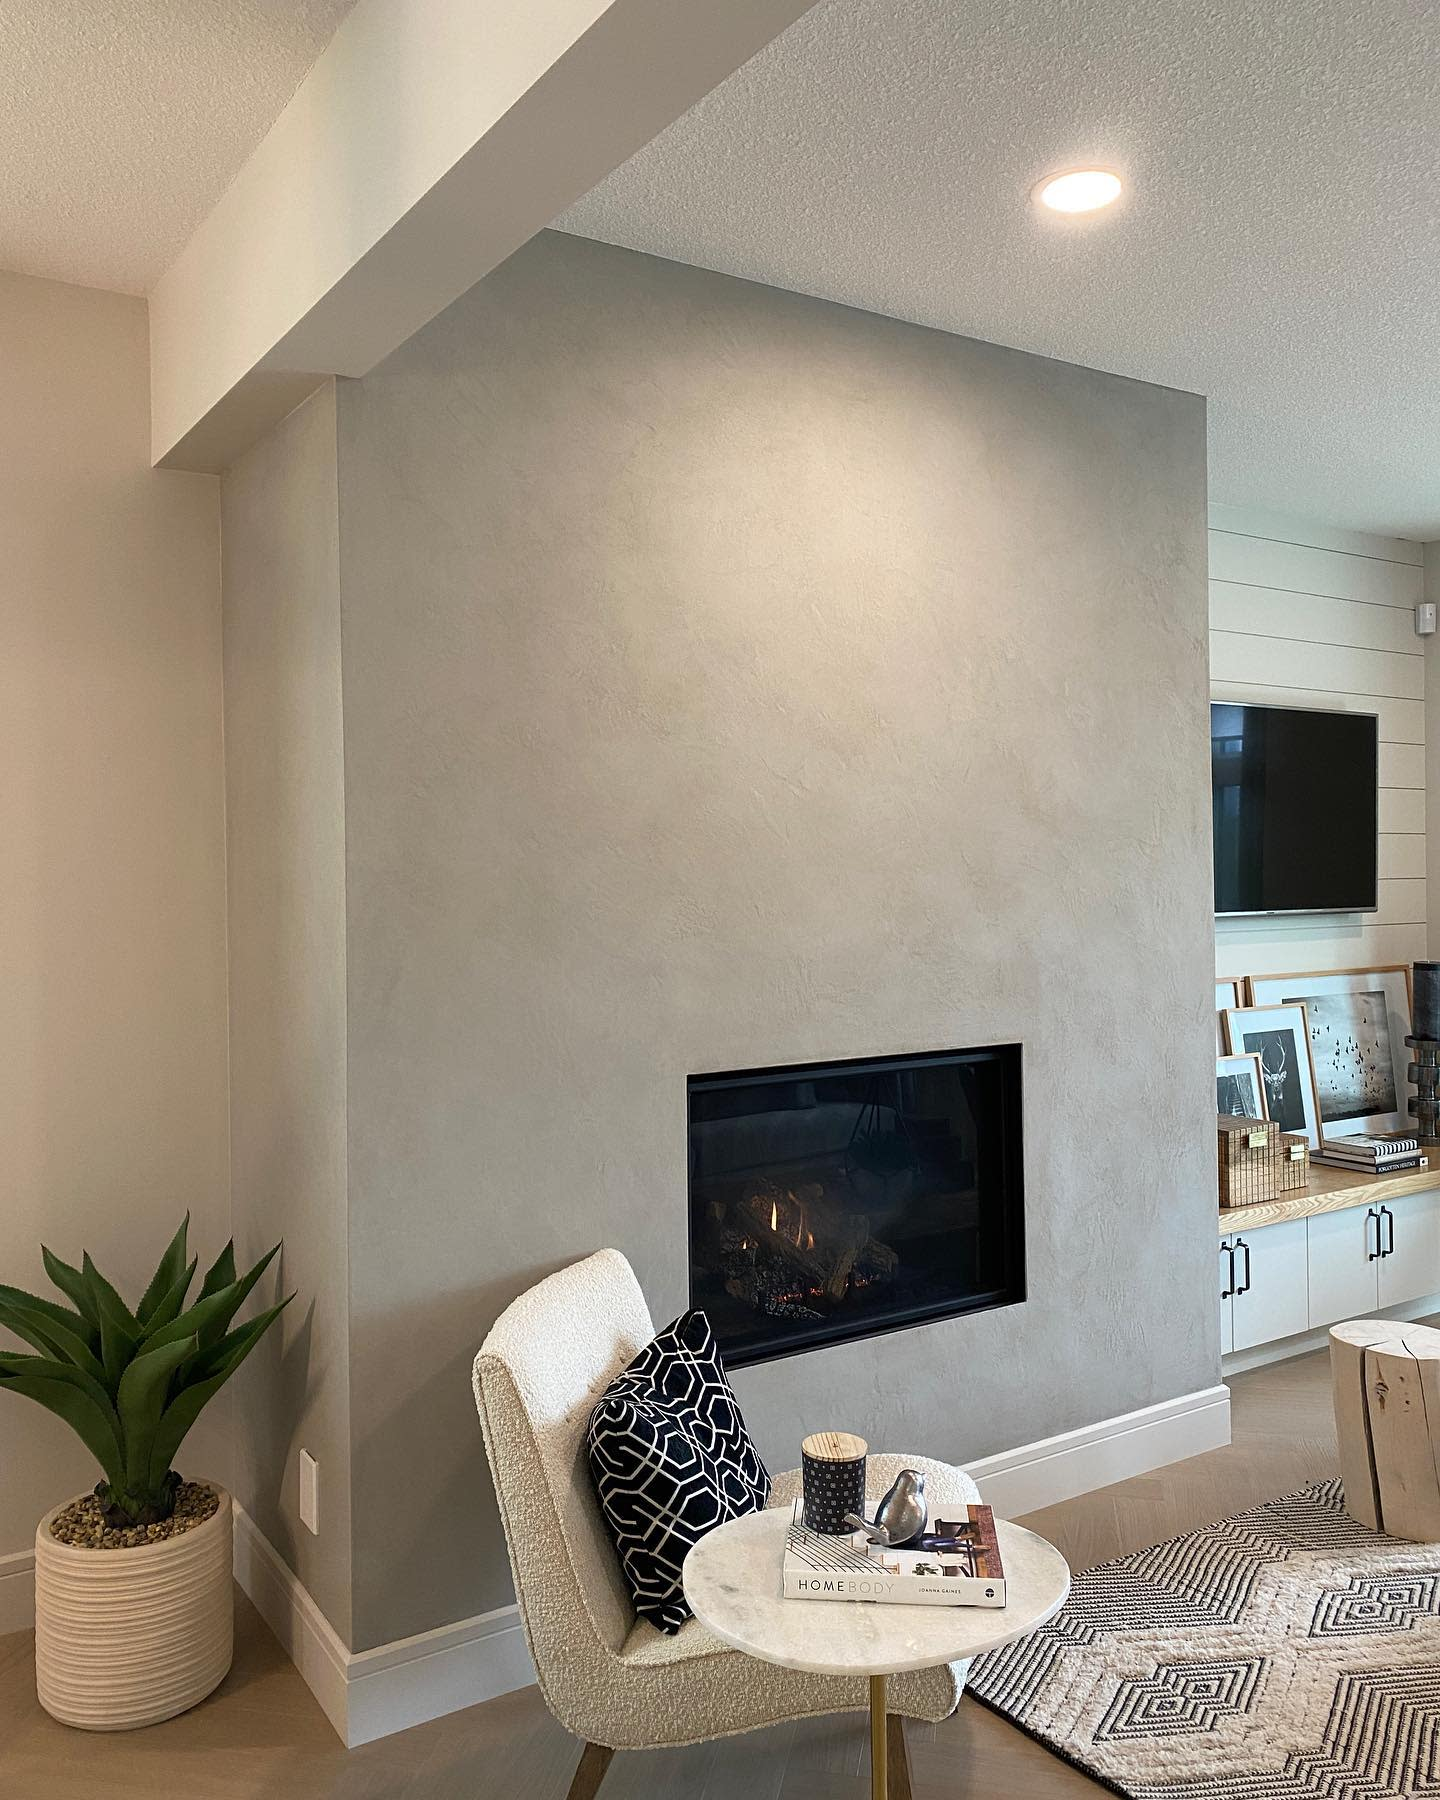 Concrete Fireplace Wall Ideas -surfacedesign.ca